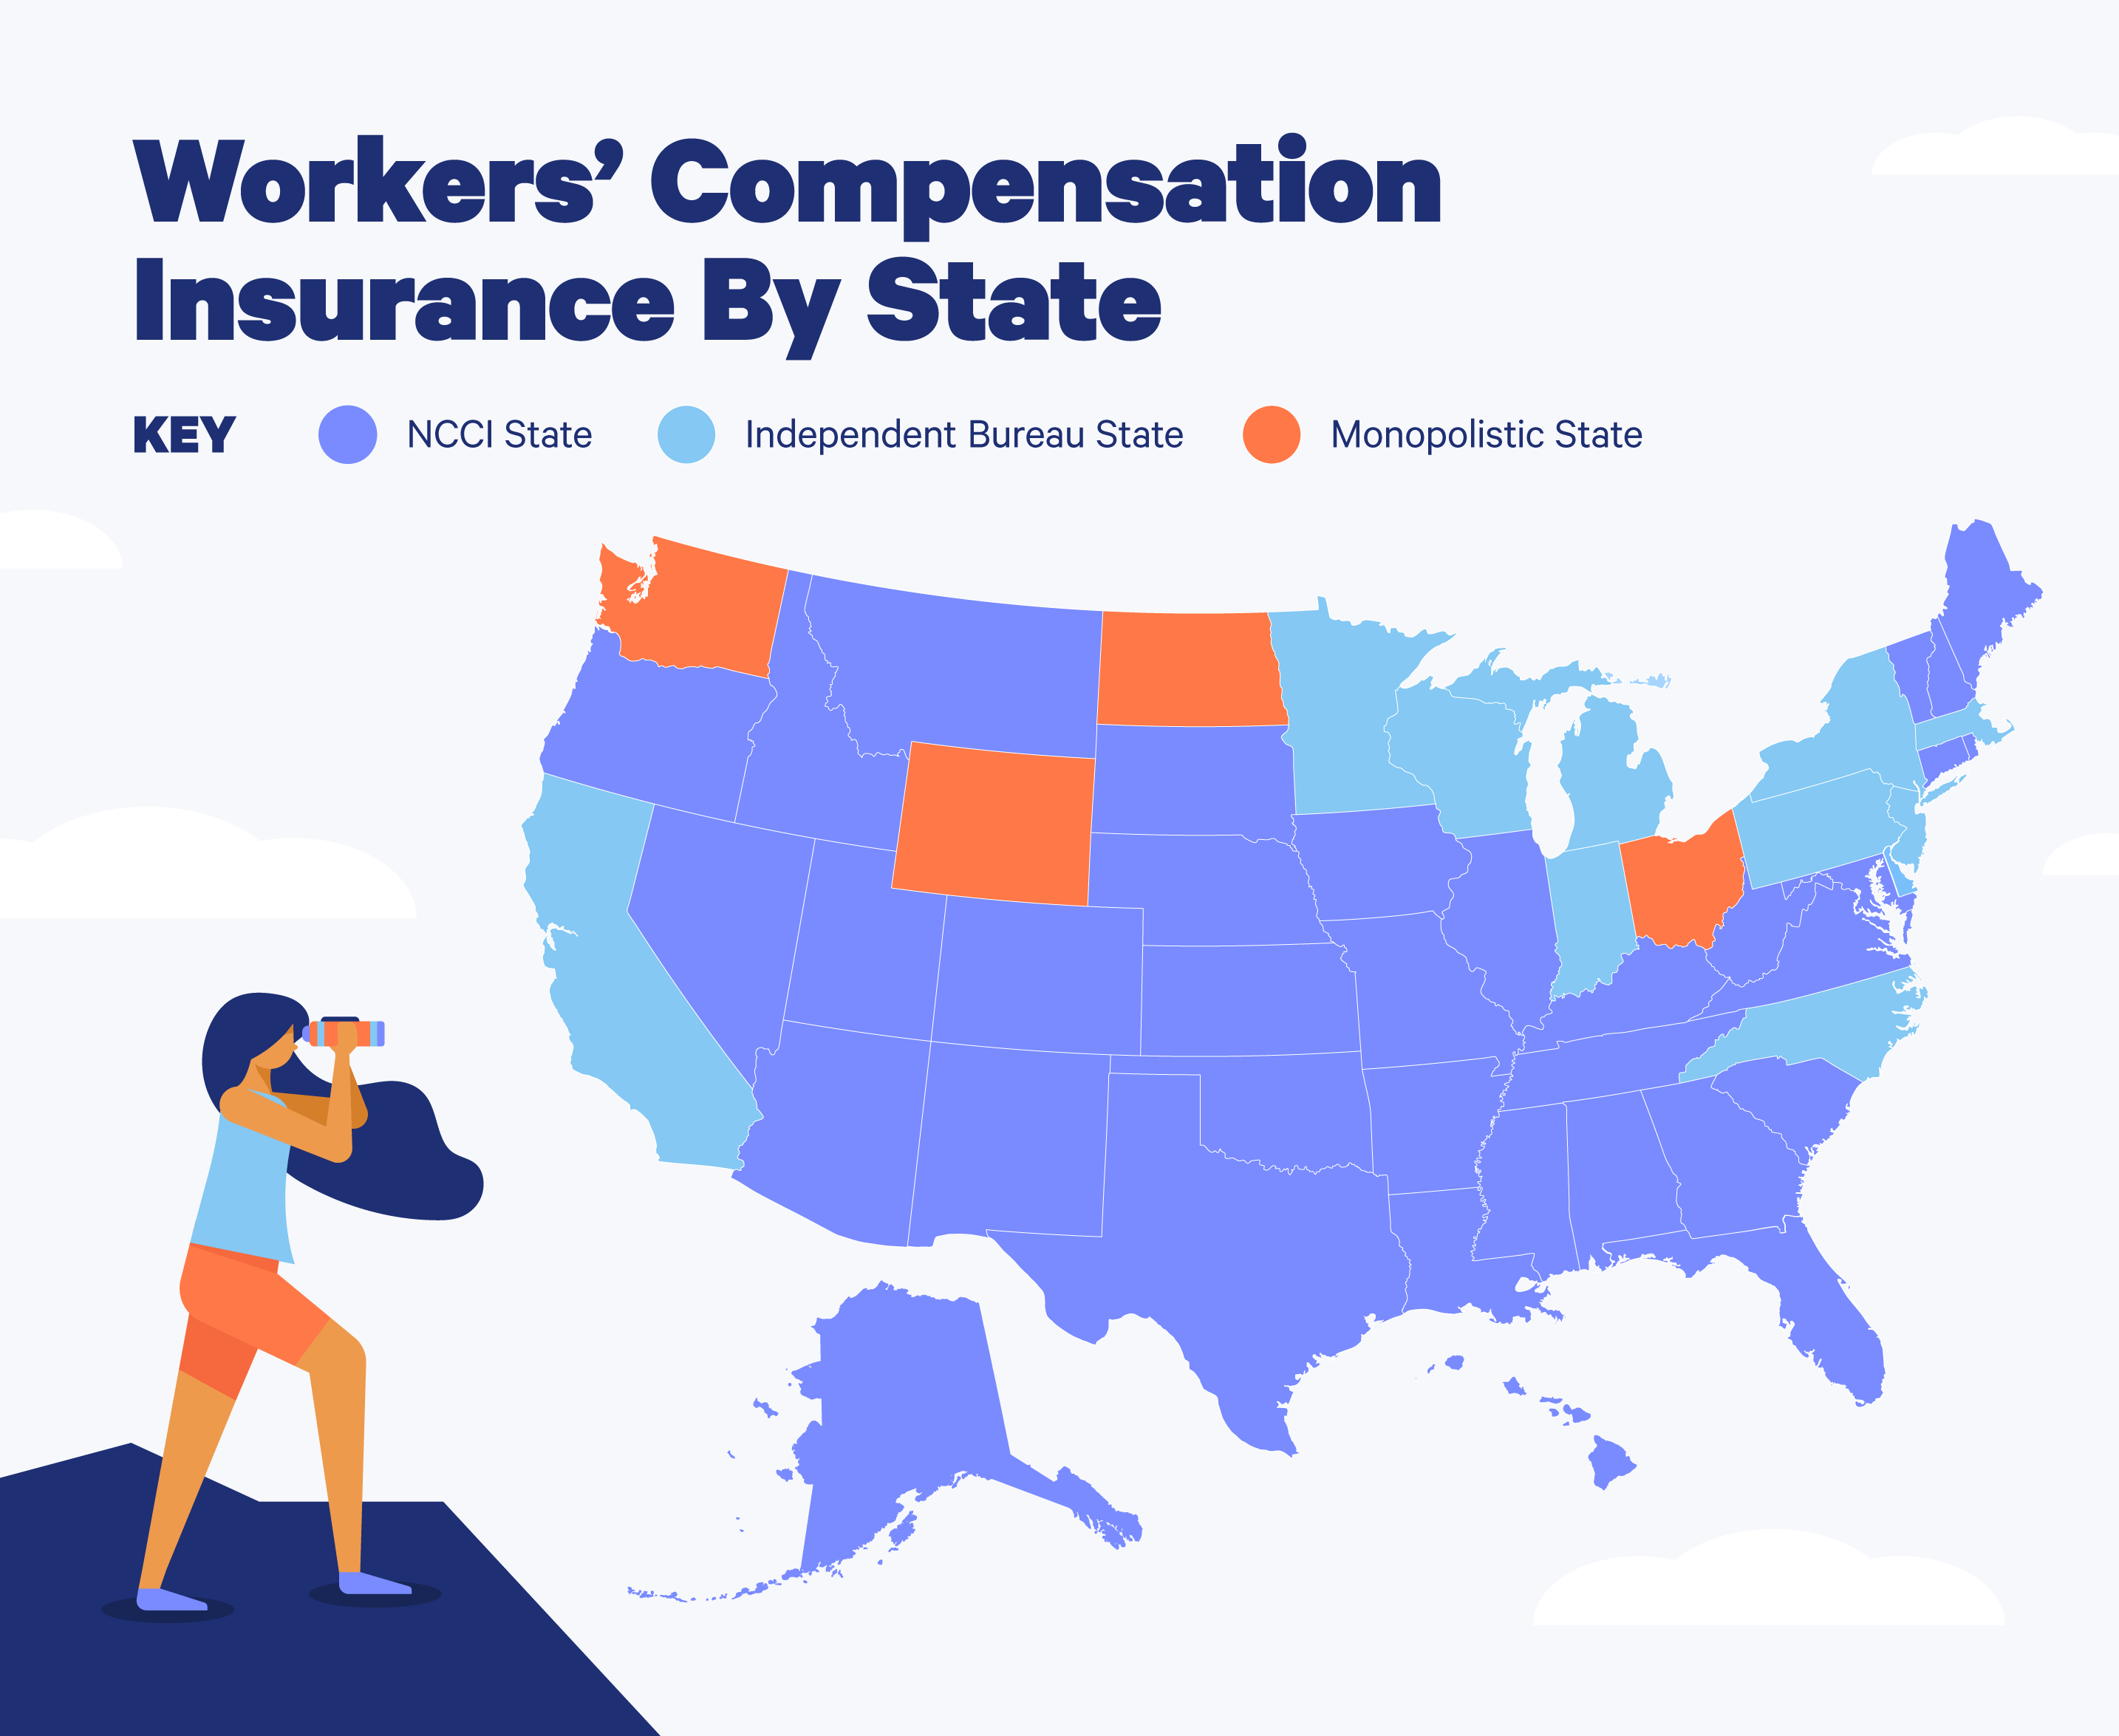 Illustration of workers compensation insurance by state map